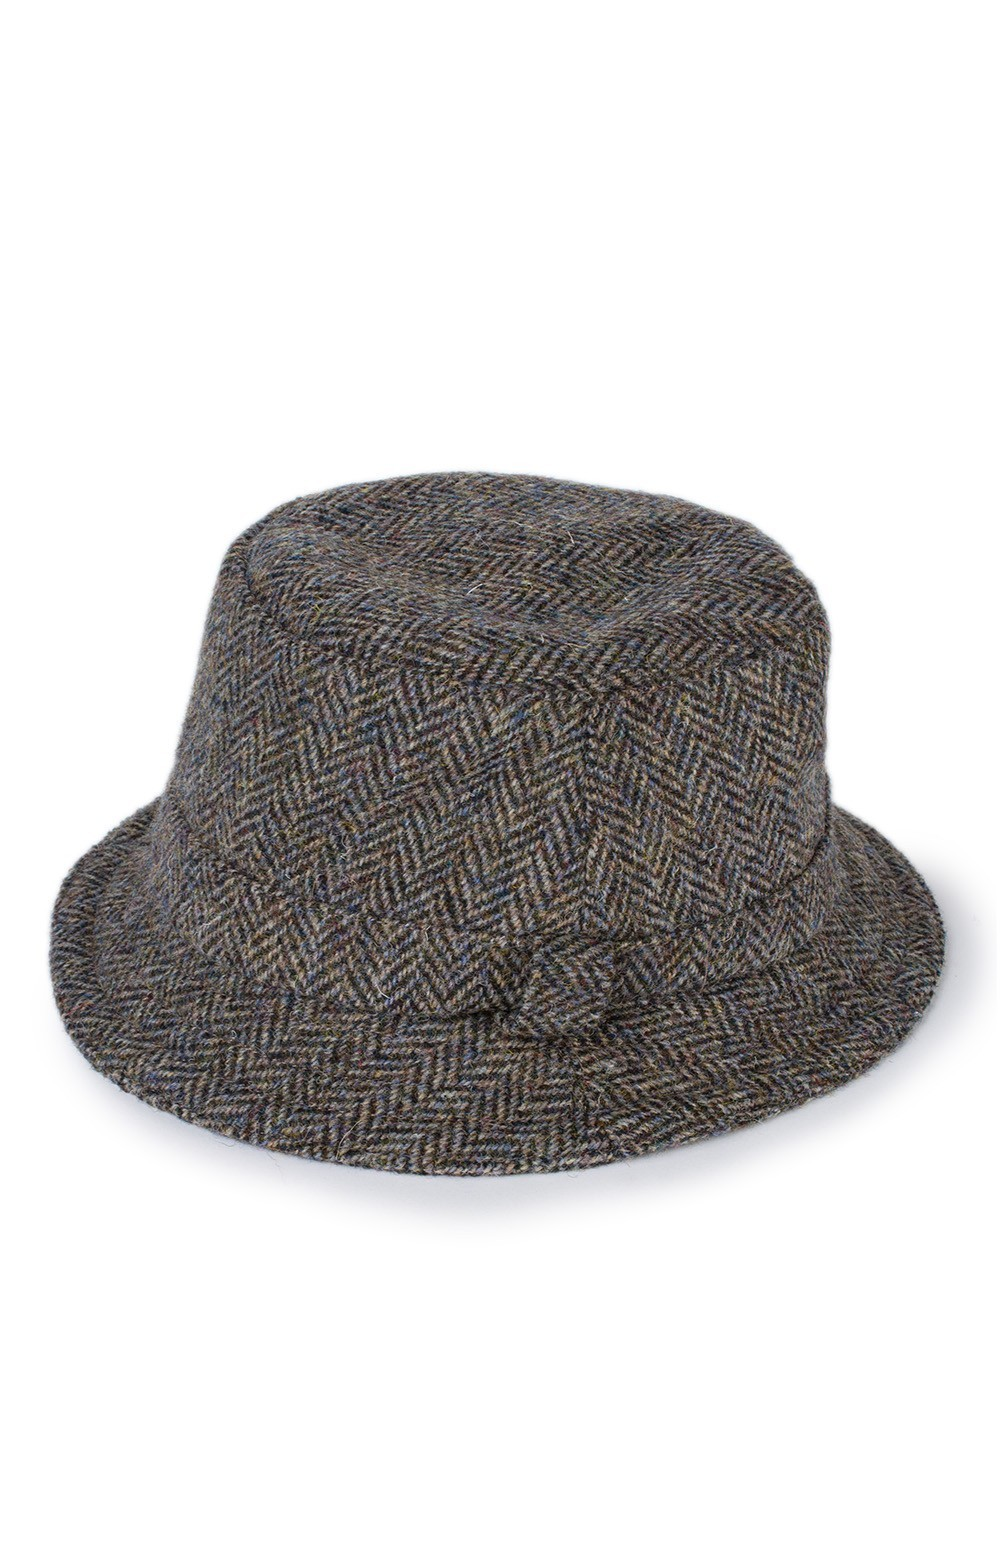 ff487ea8a0f Men s Fishing Hat - The House of Bruar